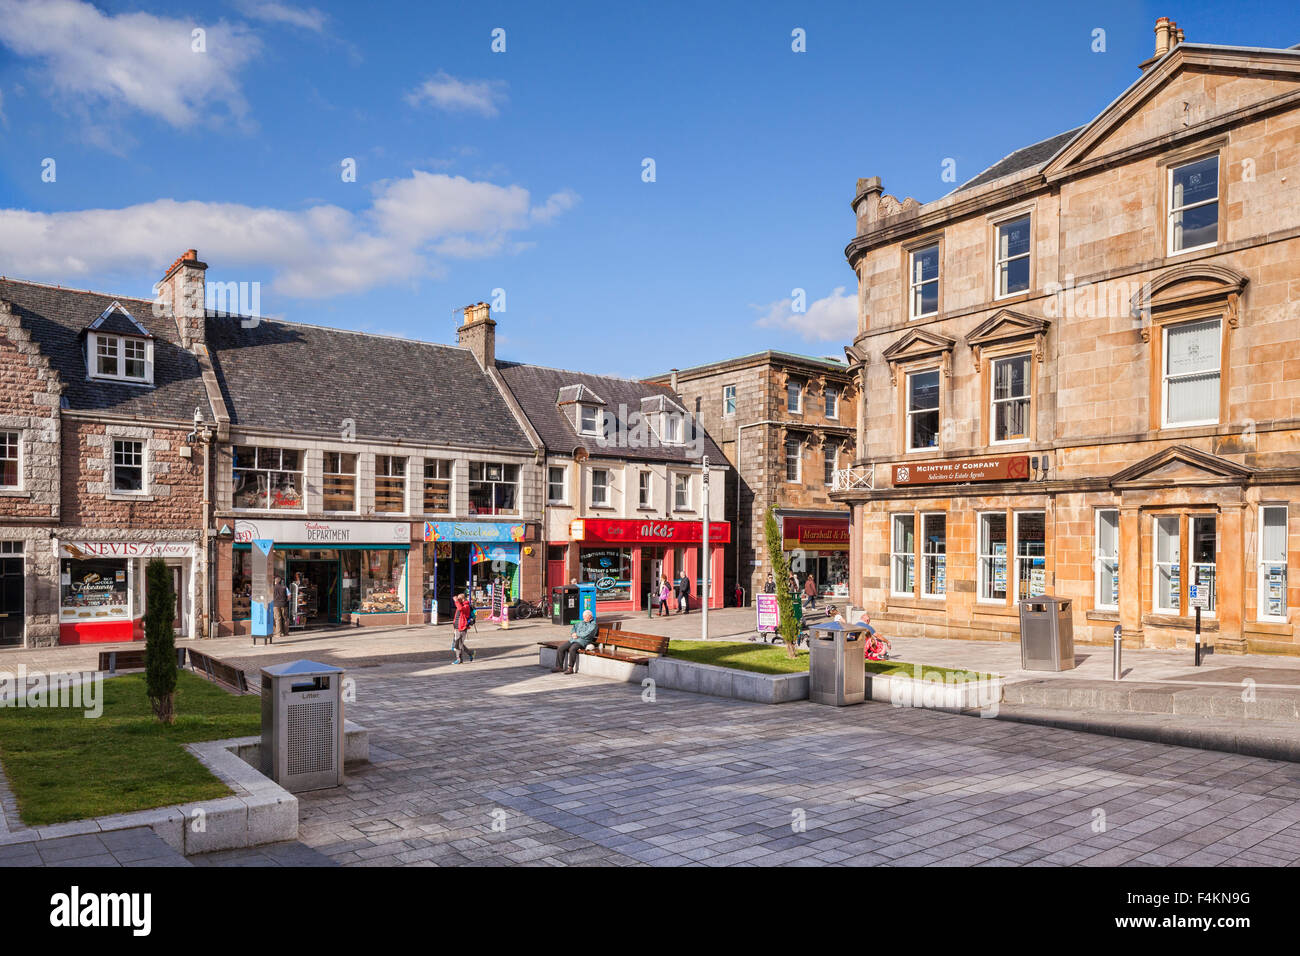 Cameron Square, in the centre of Fort William, Highland Region of Scotland, on a sunny autumn Sunday afternoon. - Stock Image